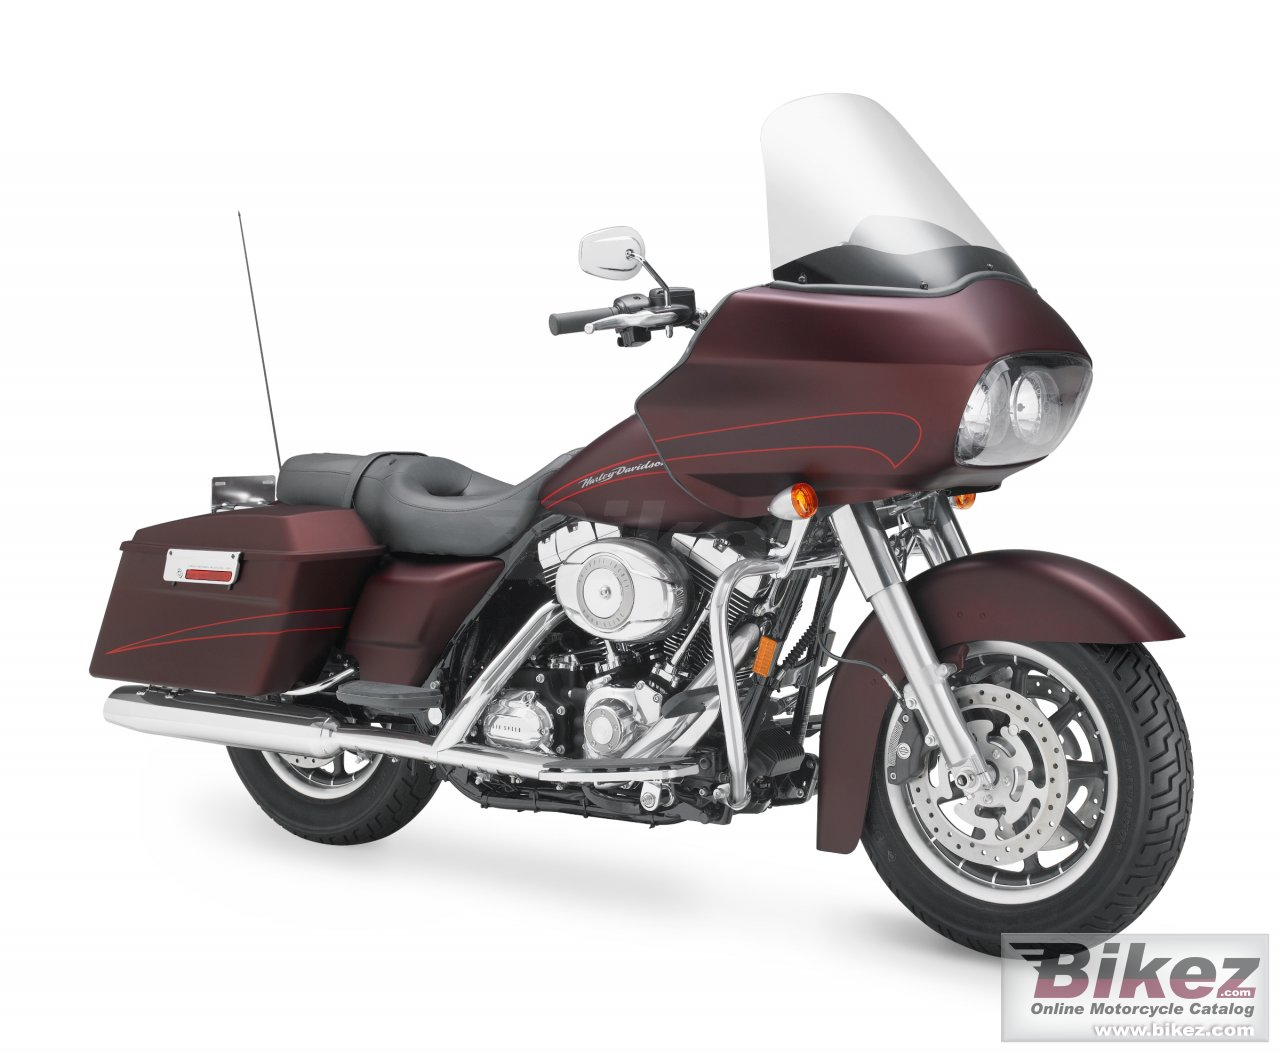 Big Harley-Davidson fltr road glide picture and wallpaper from Bikez.com